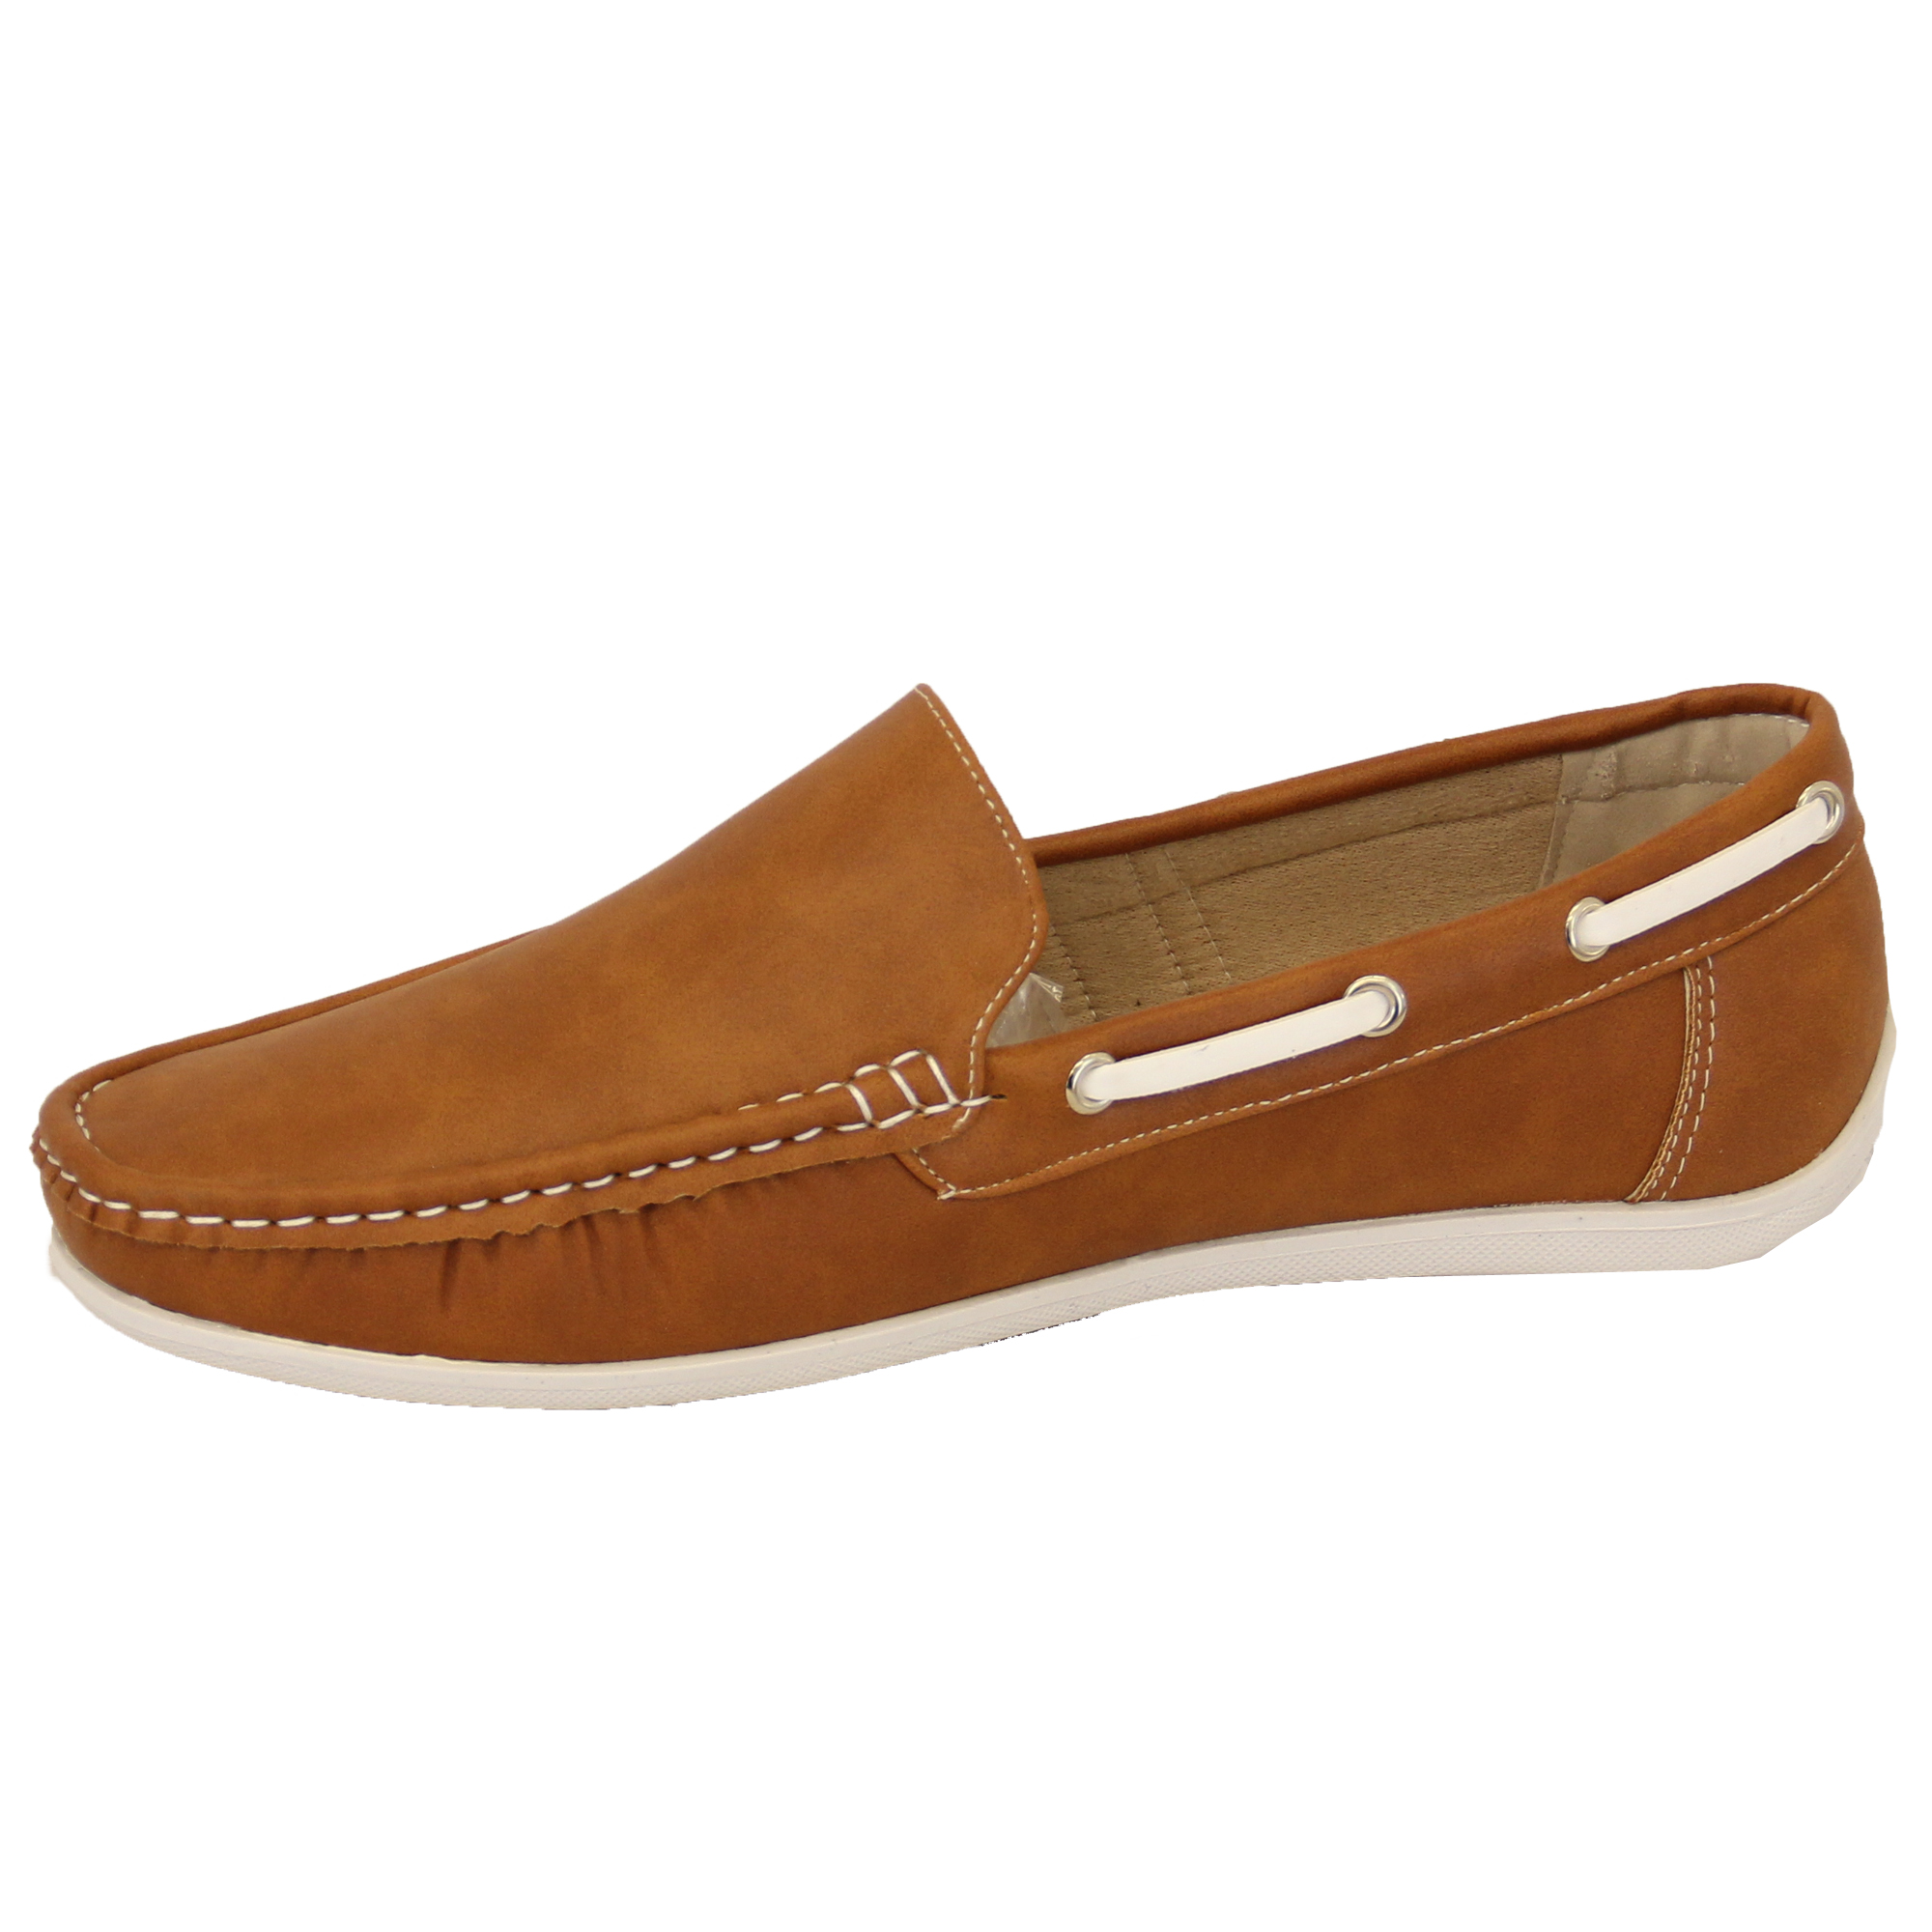 Mens Slip On Boat Deck Loafers Shoes Velcro